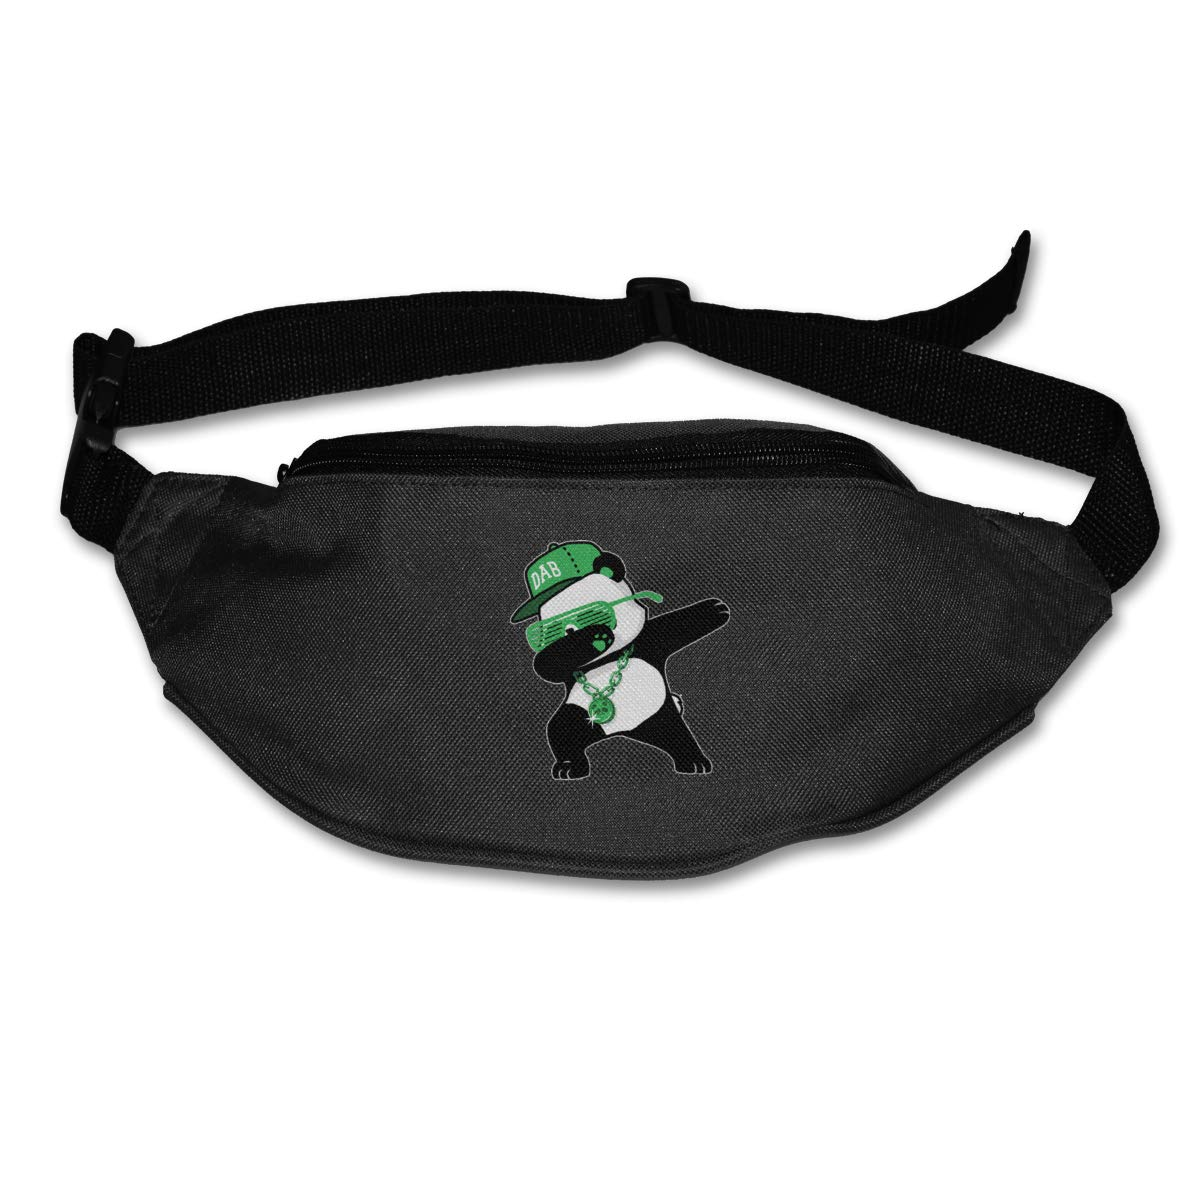 Dabbing Panda Necklace Sport Waist Bag Fanny Pack Adjustable For Hike